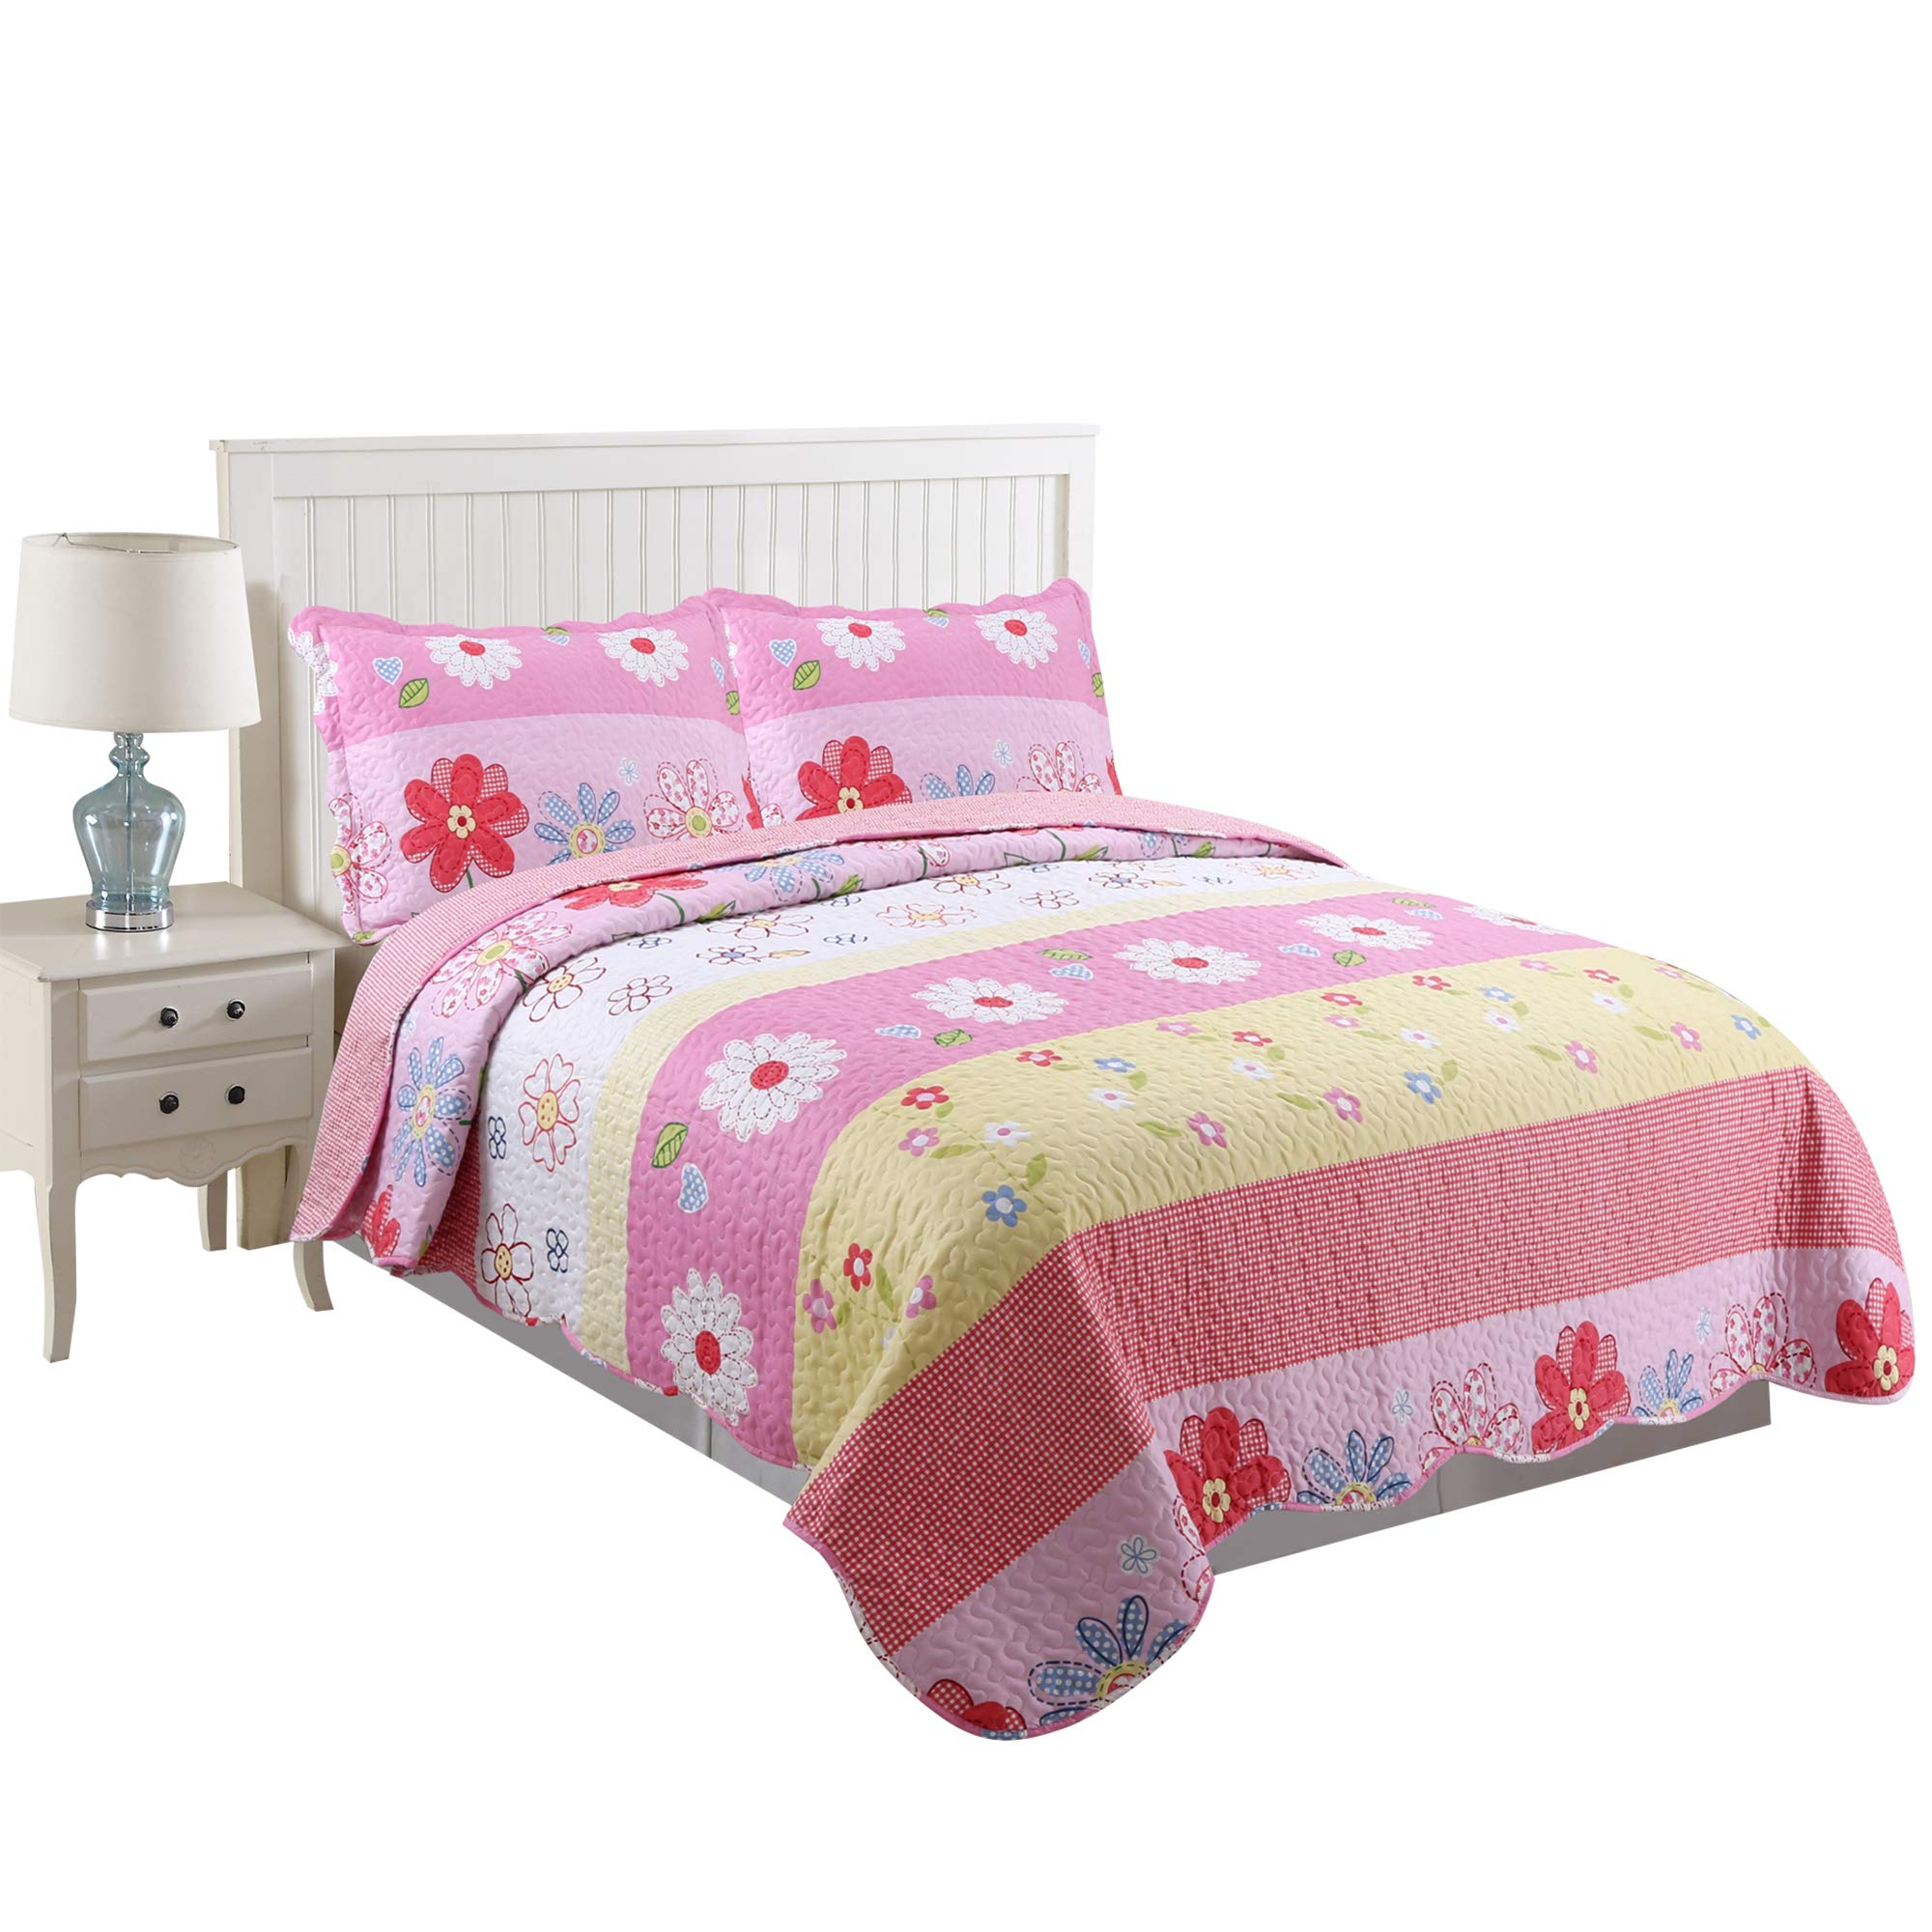 MarCielo 3 Piece Kids Bedspread Quilts Set Throw Blanket for Teens Girls Bed Printed Bedding Coverlet, Full Size, Pink Floral (Full)